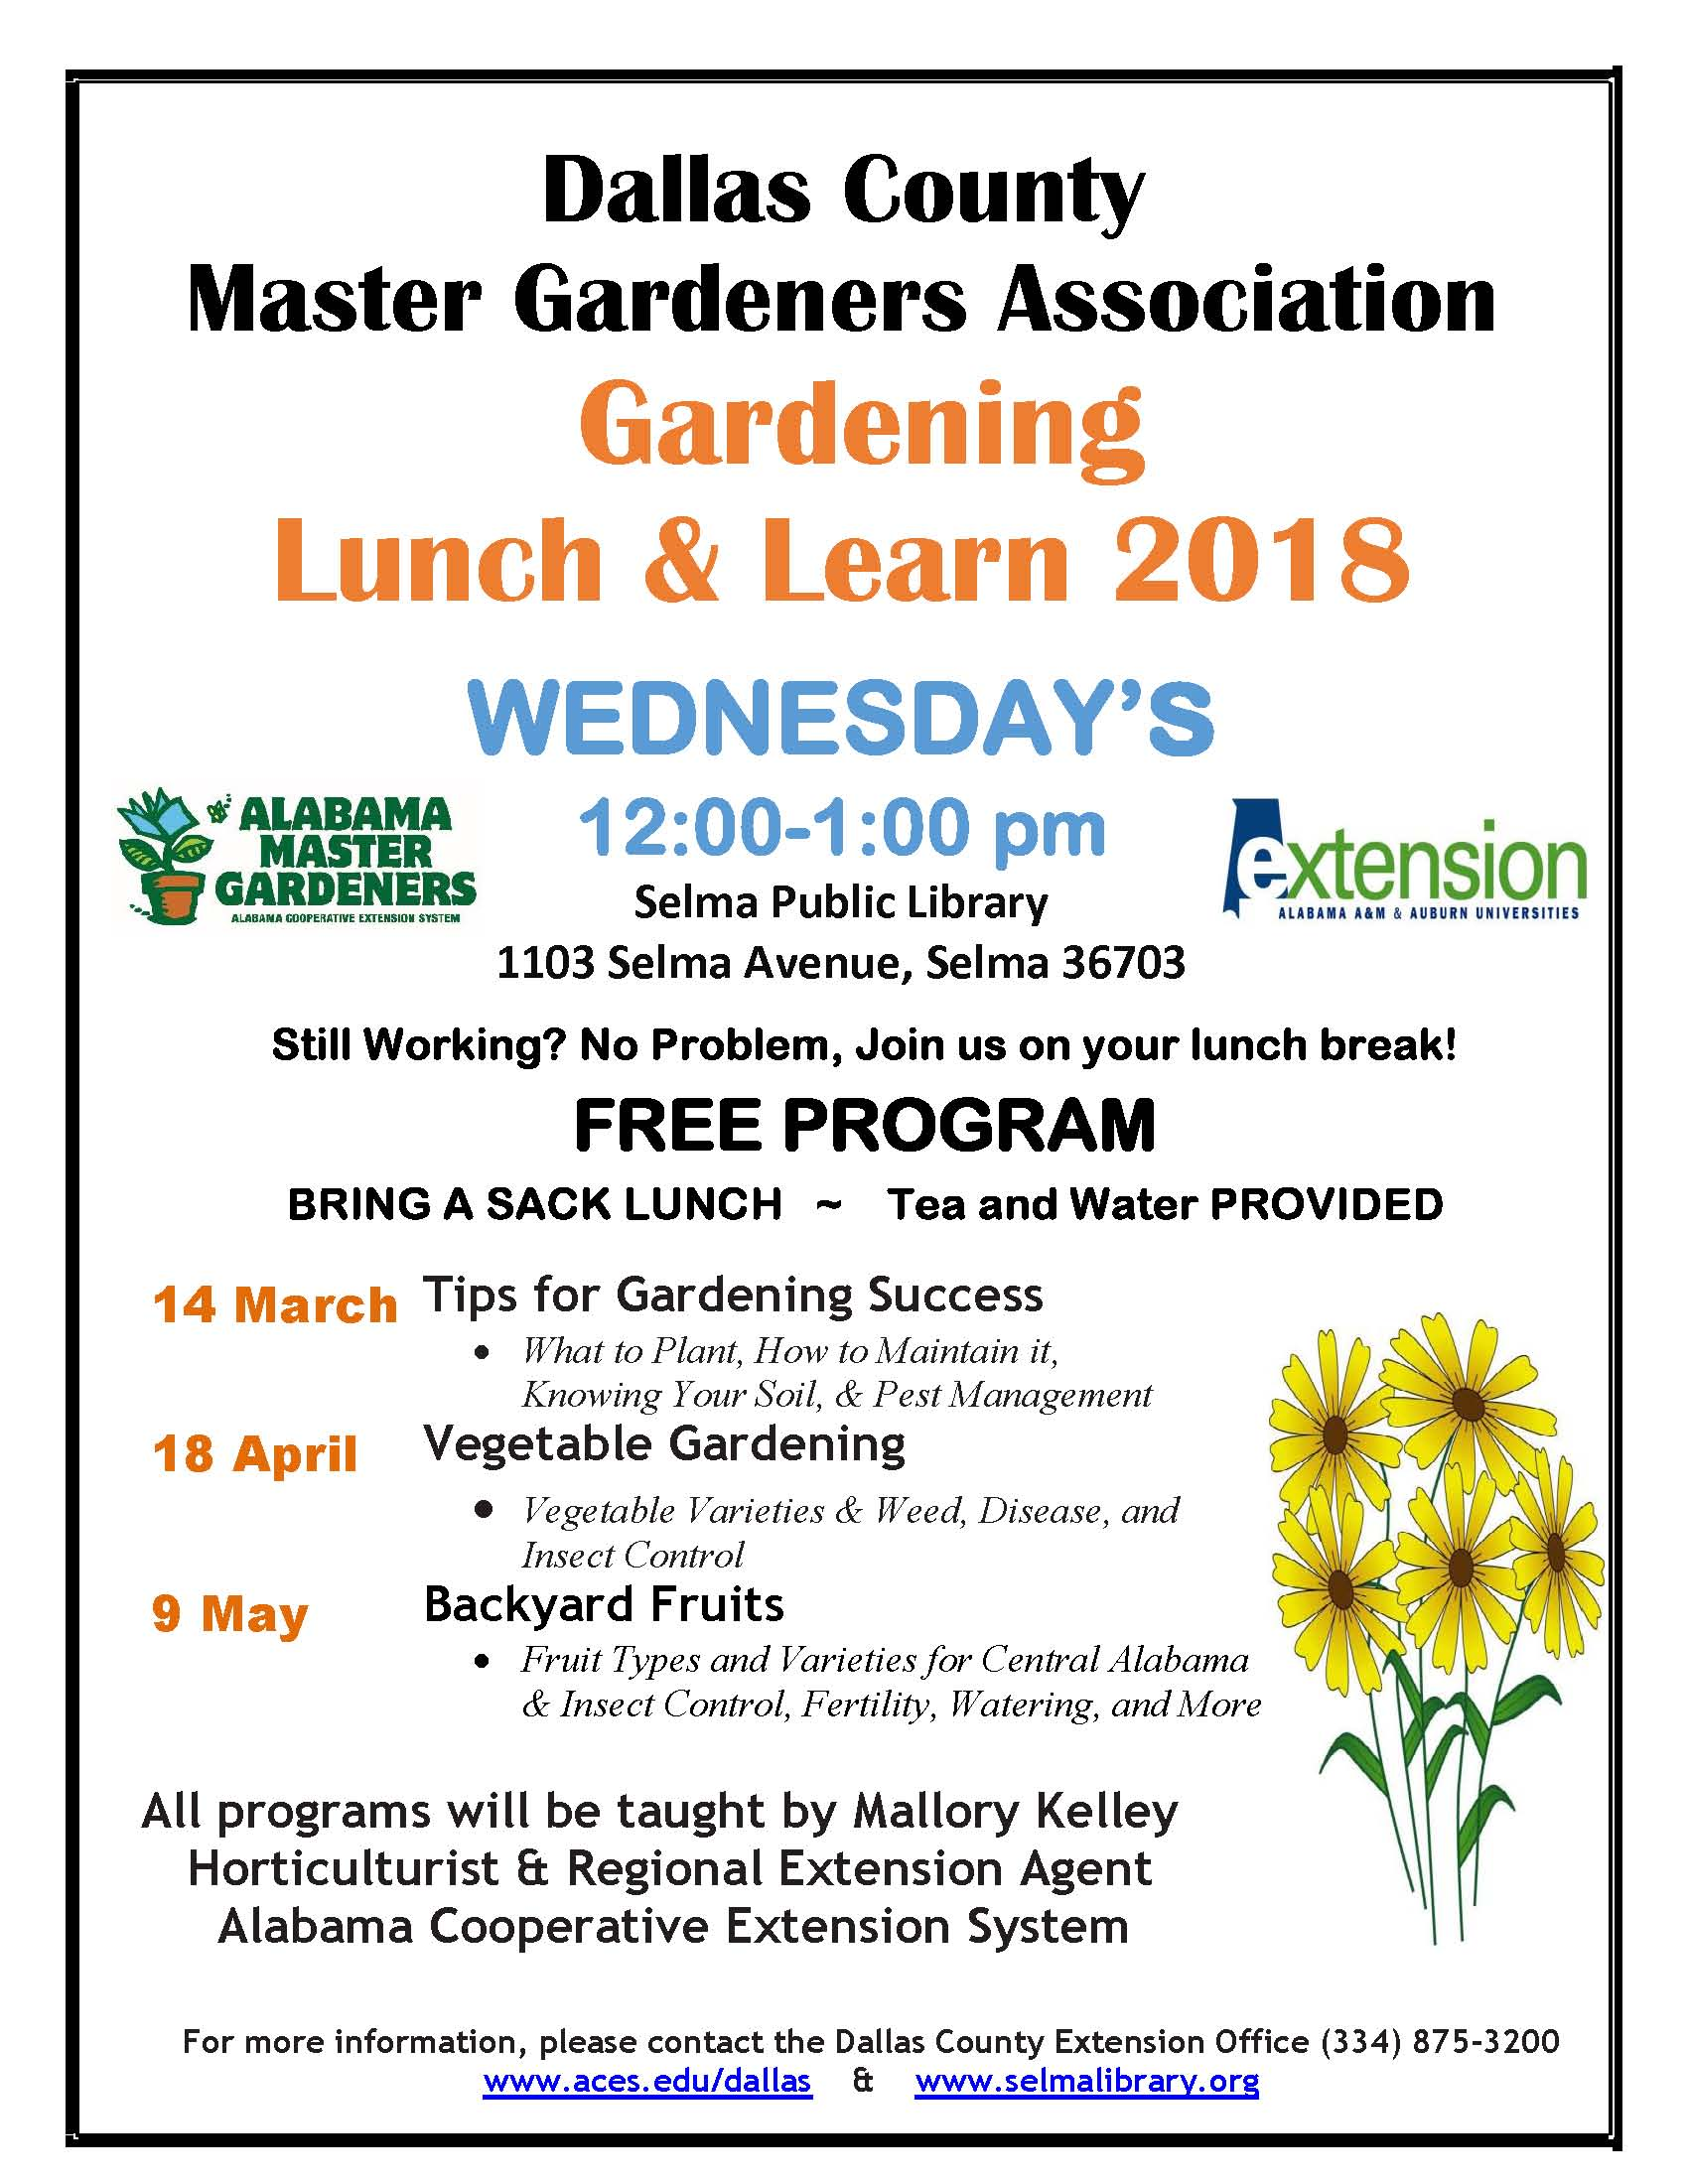 Master Gardener 2018 Dallas LL Full Page Flyer